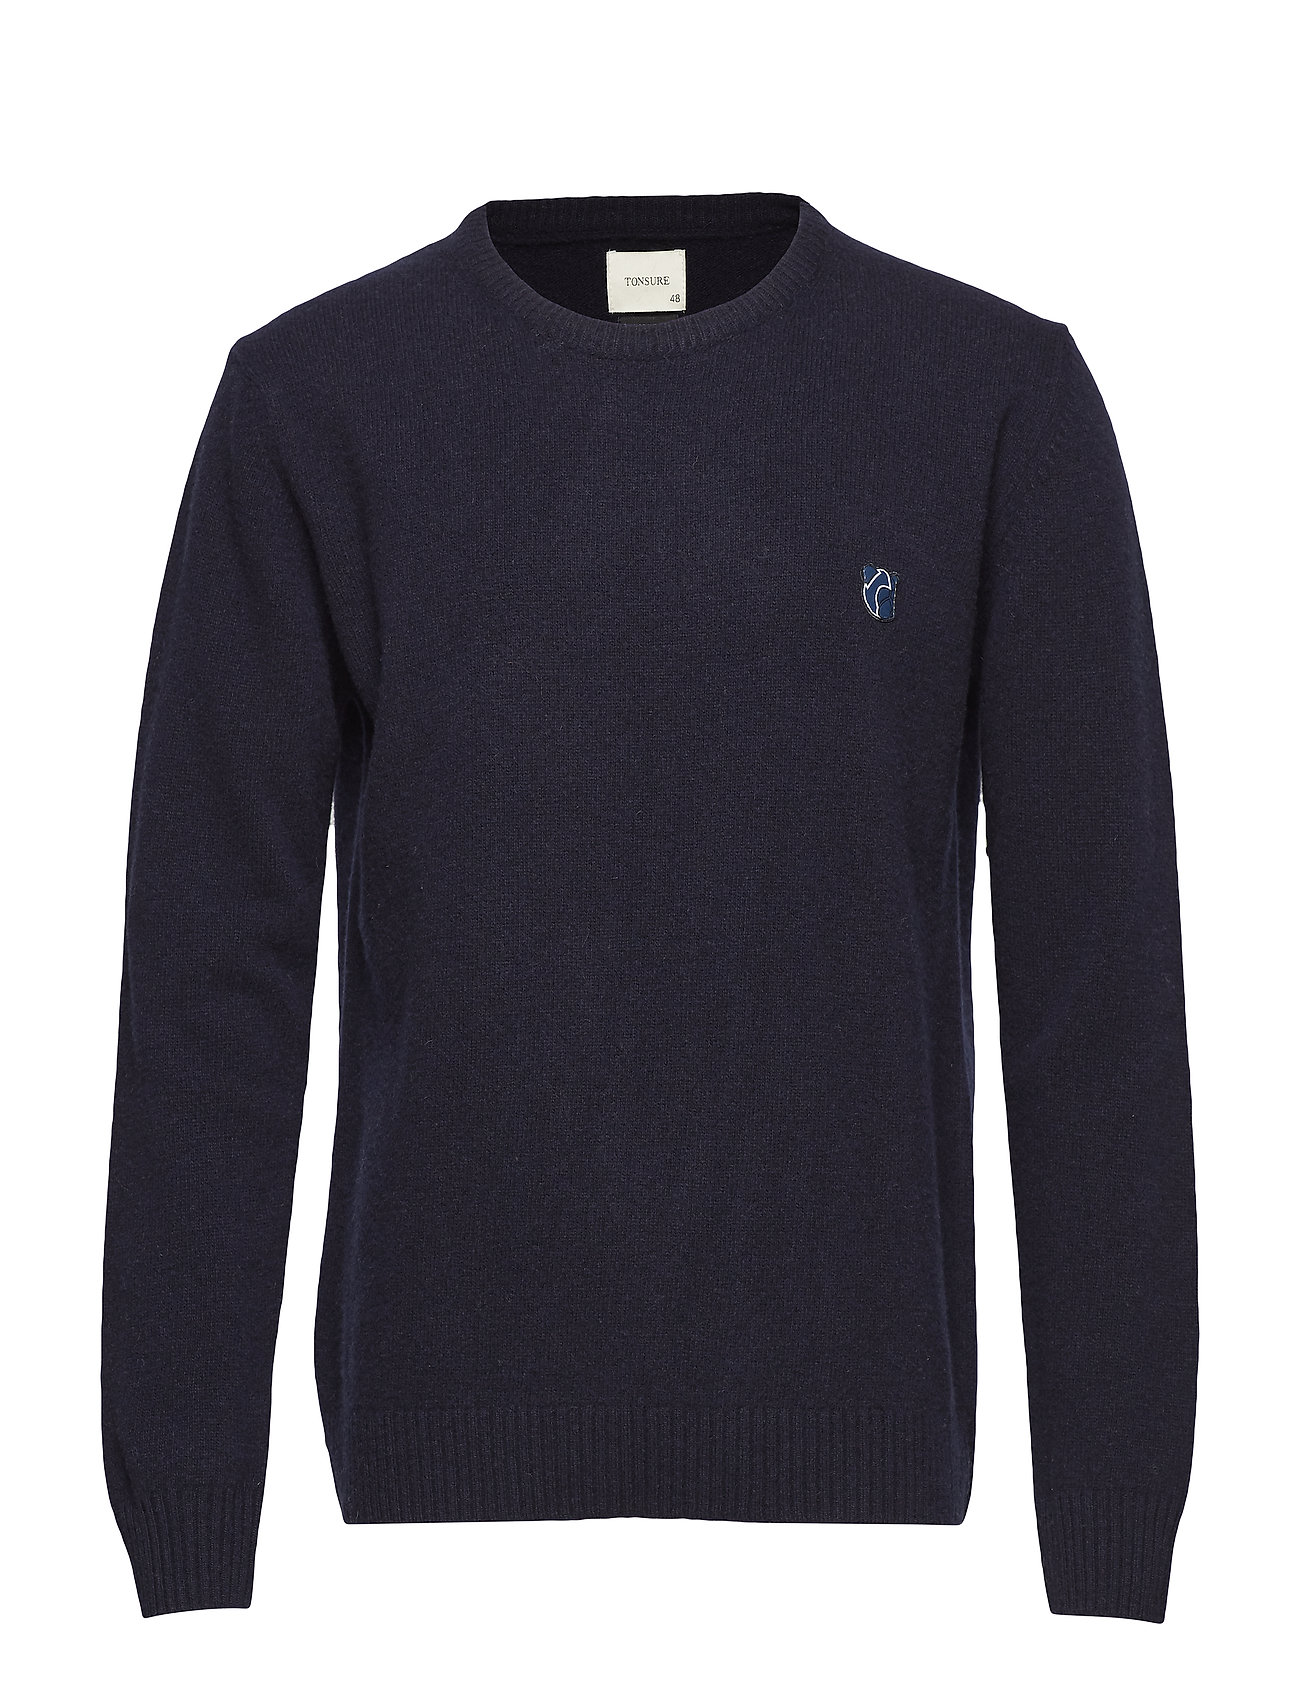 Tonsure ROLL NECK IN WASHED LAMBSWOOL WITH TEDDY LOGO. - NAVY